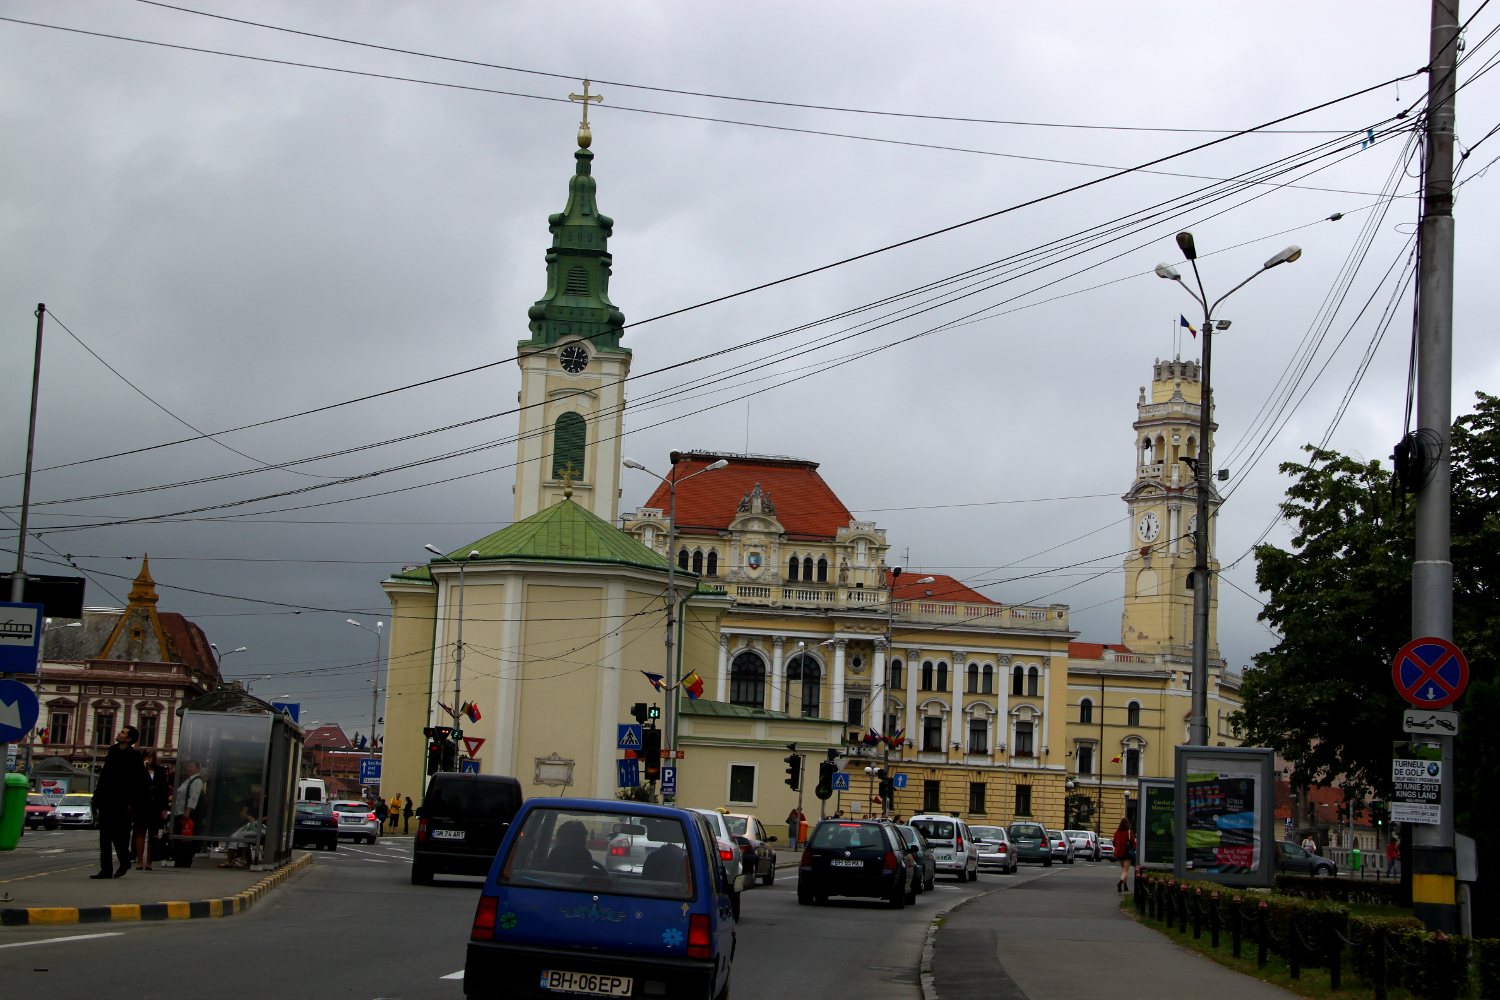 Church in Oradea and a sky with many cables